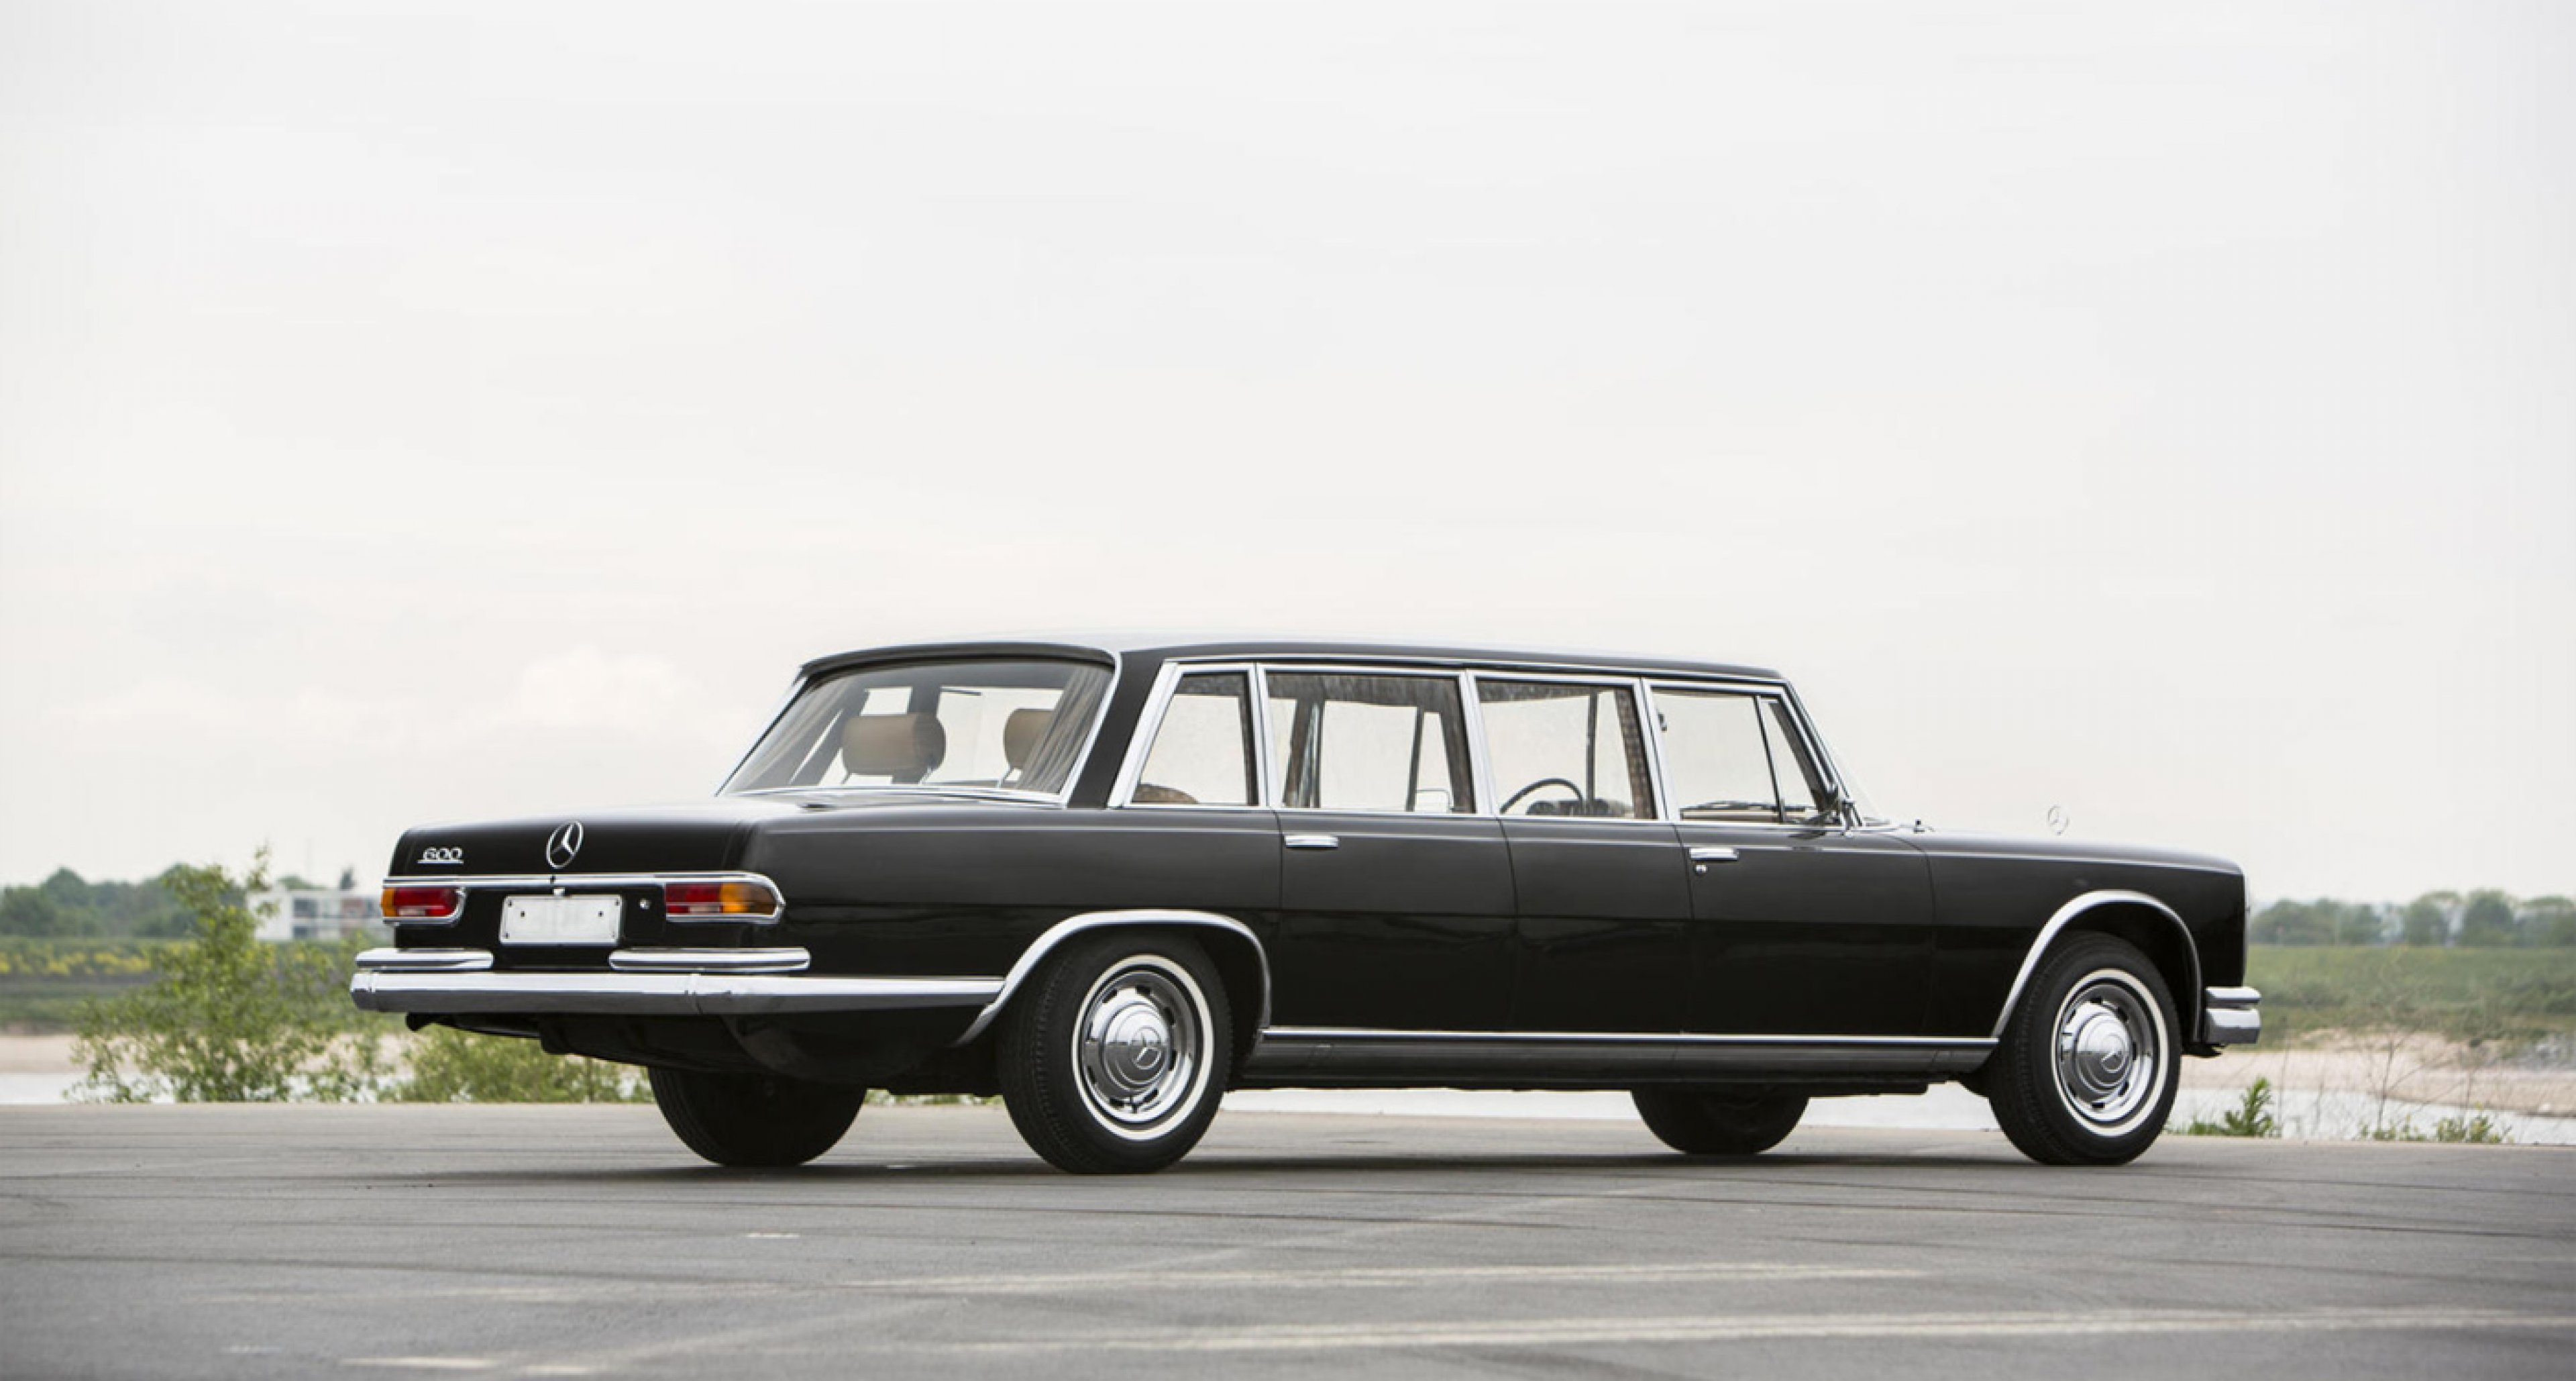 Lot 36: 1965 Mercedes-Benz 600 Pullman Limousine 'The ex-Chen Yi' (€ 150,000 - 250,000)